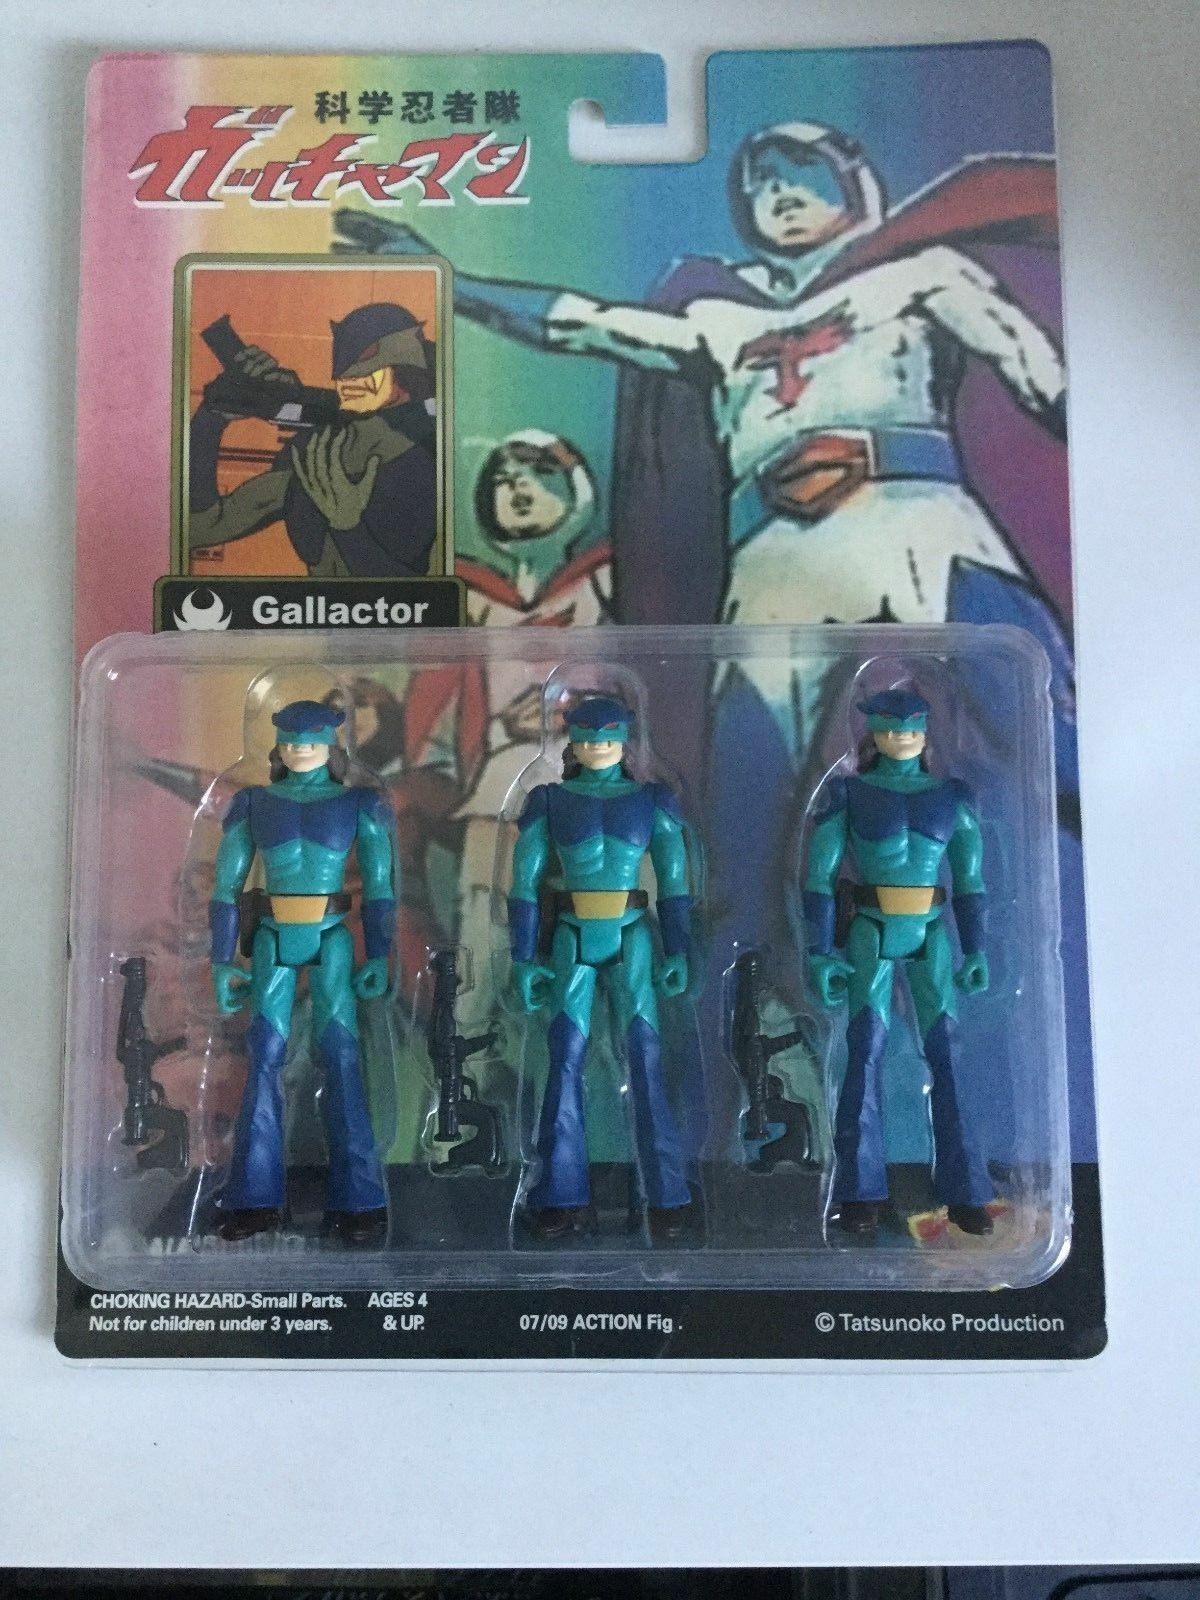 Gallactor Troopers x 3 - Gatchaman battle Of The Planets- Zoltar Mark Star Wars